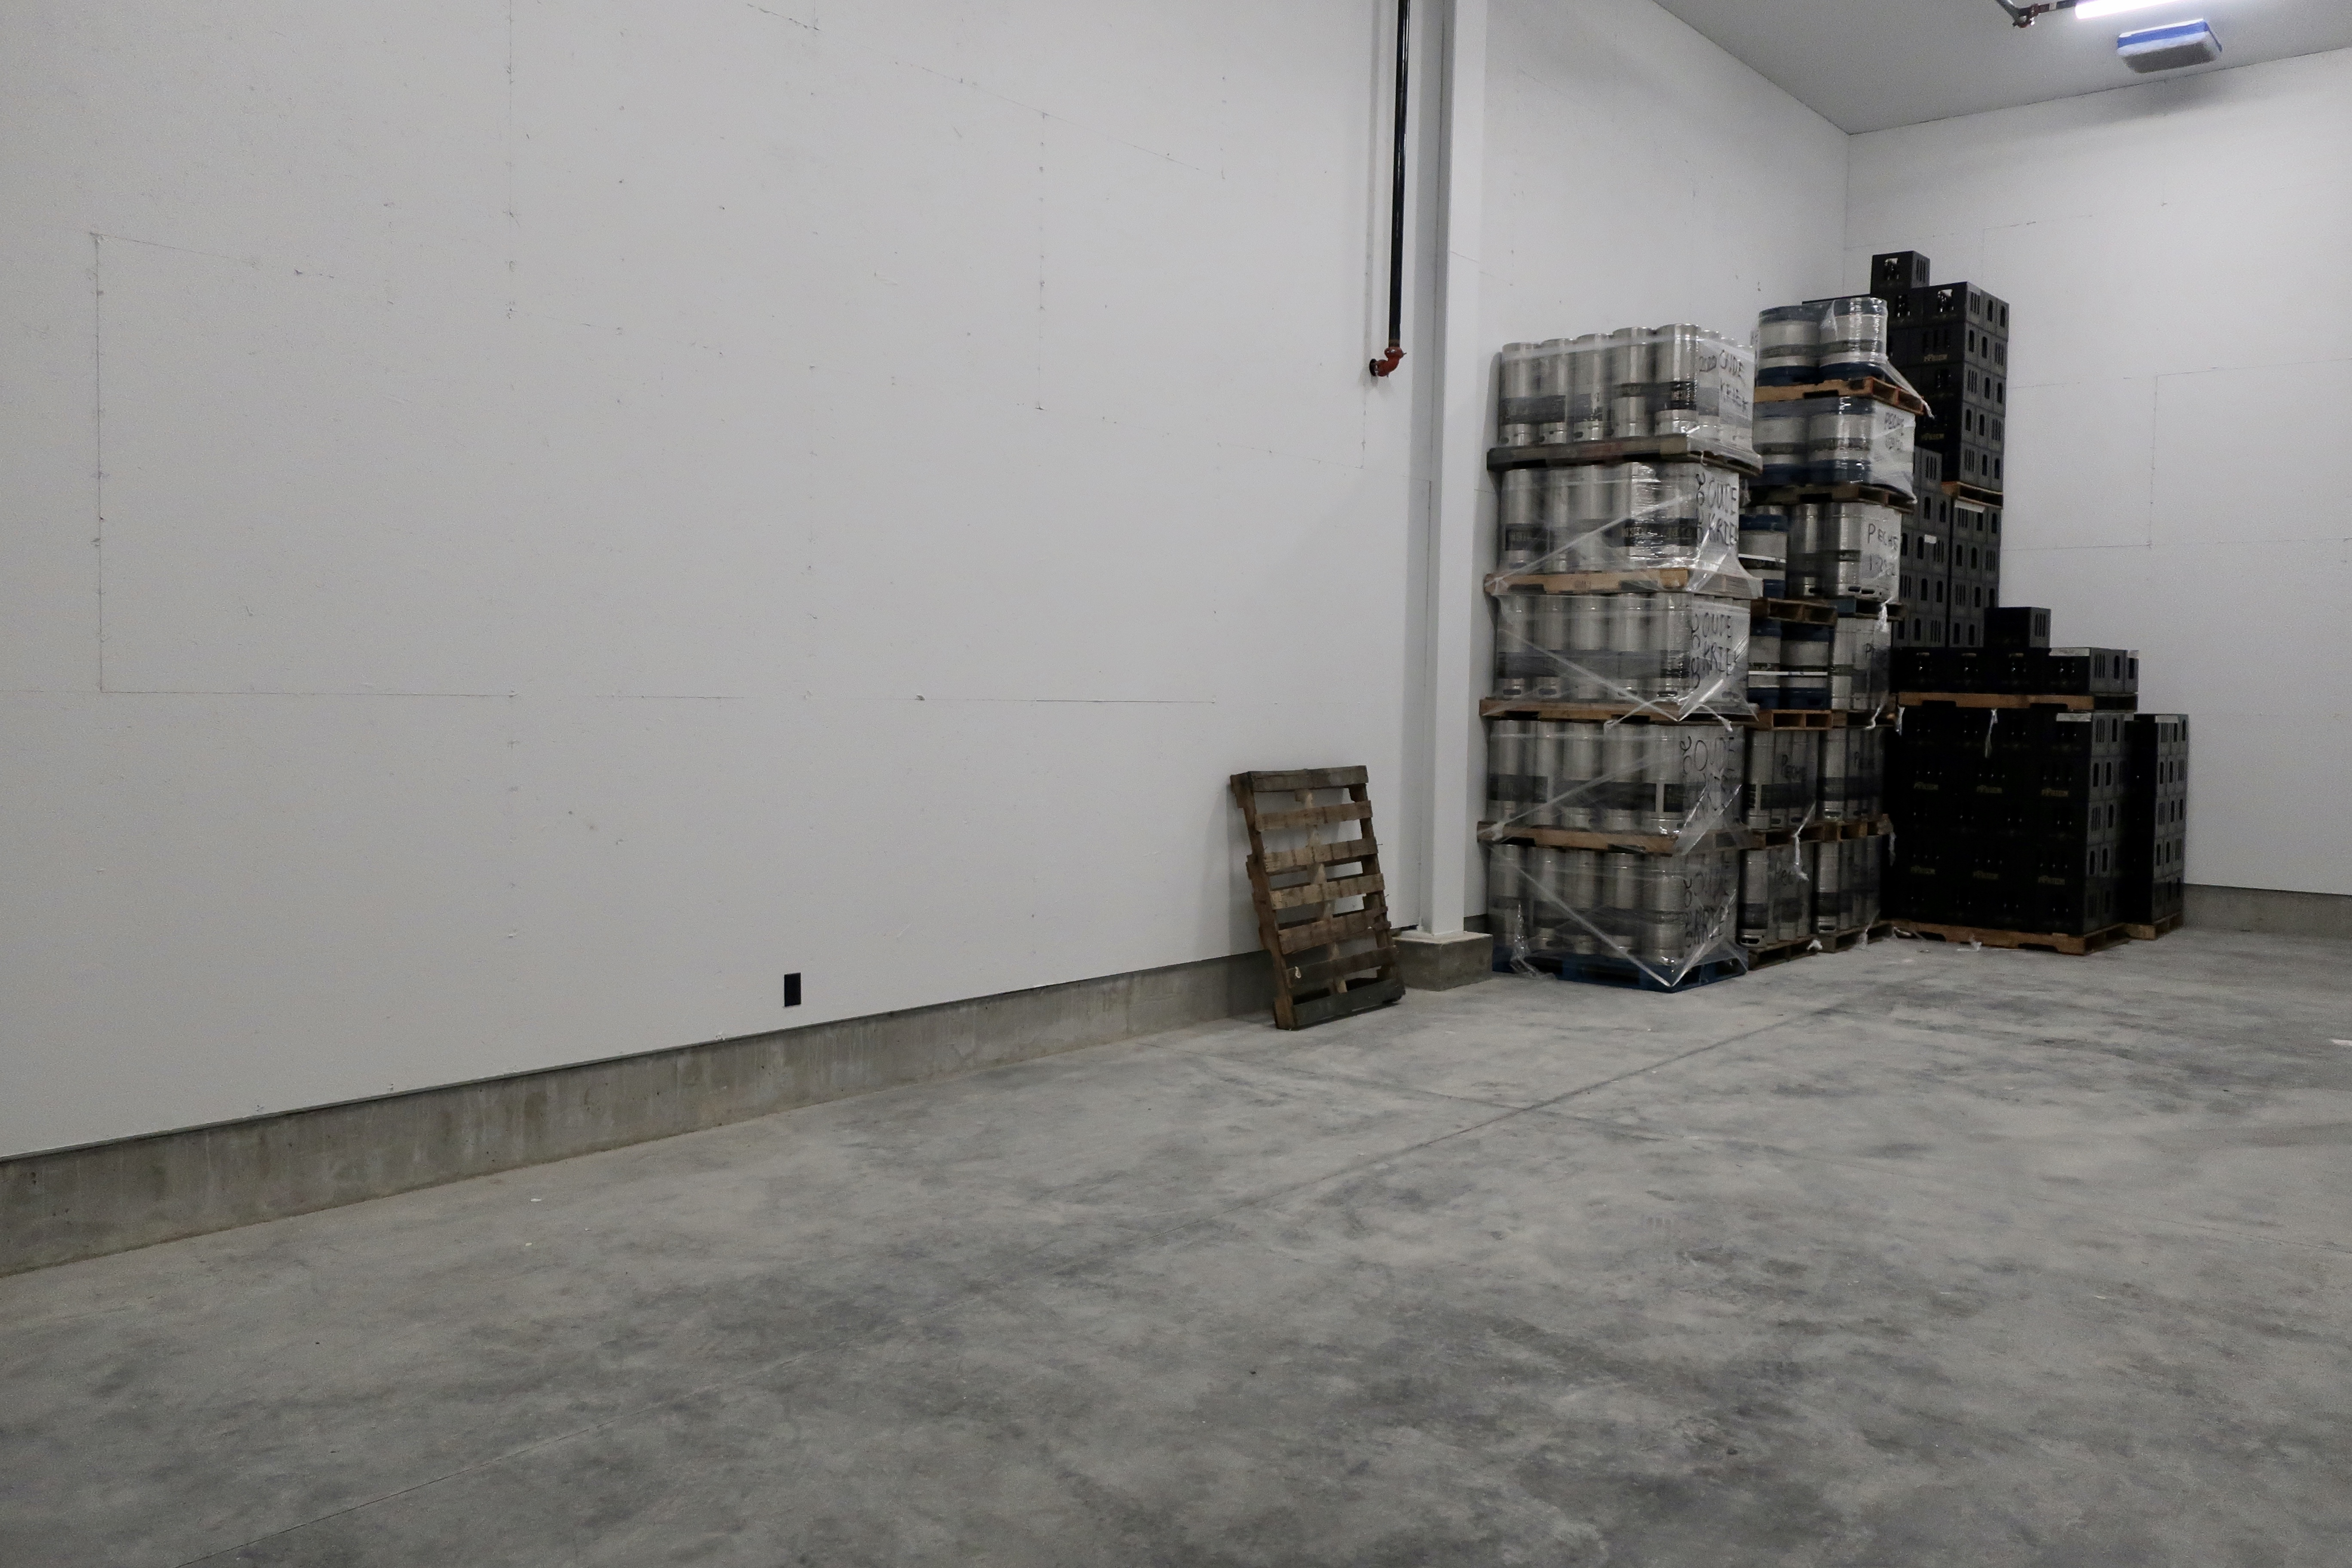 The warm room space forthcoming pFriem Family Brewers location in Cascade Locks, Oregon will be much larger than its current space in Hood River.